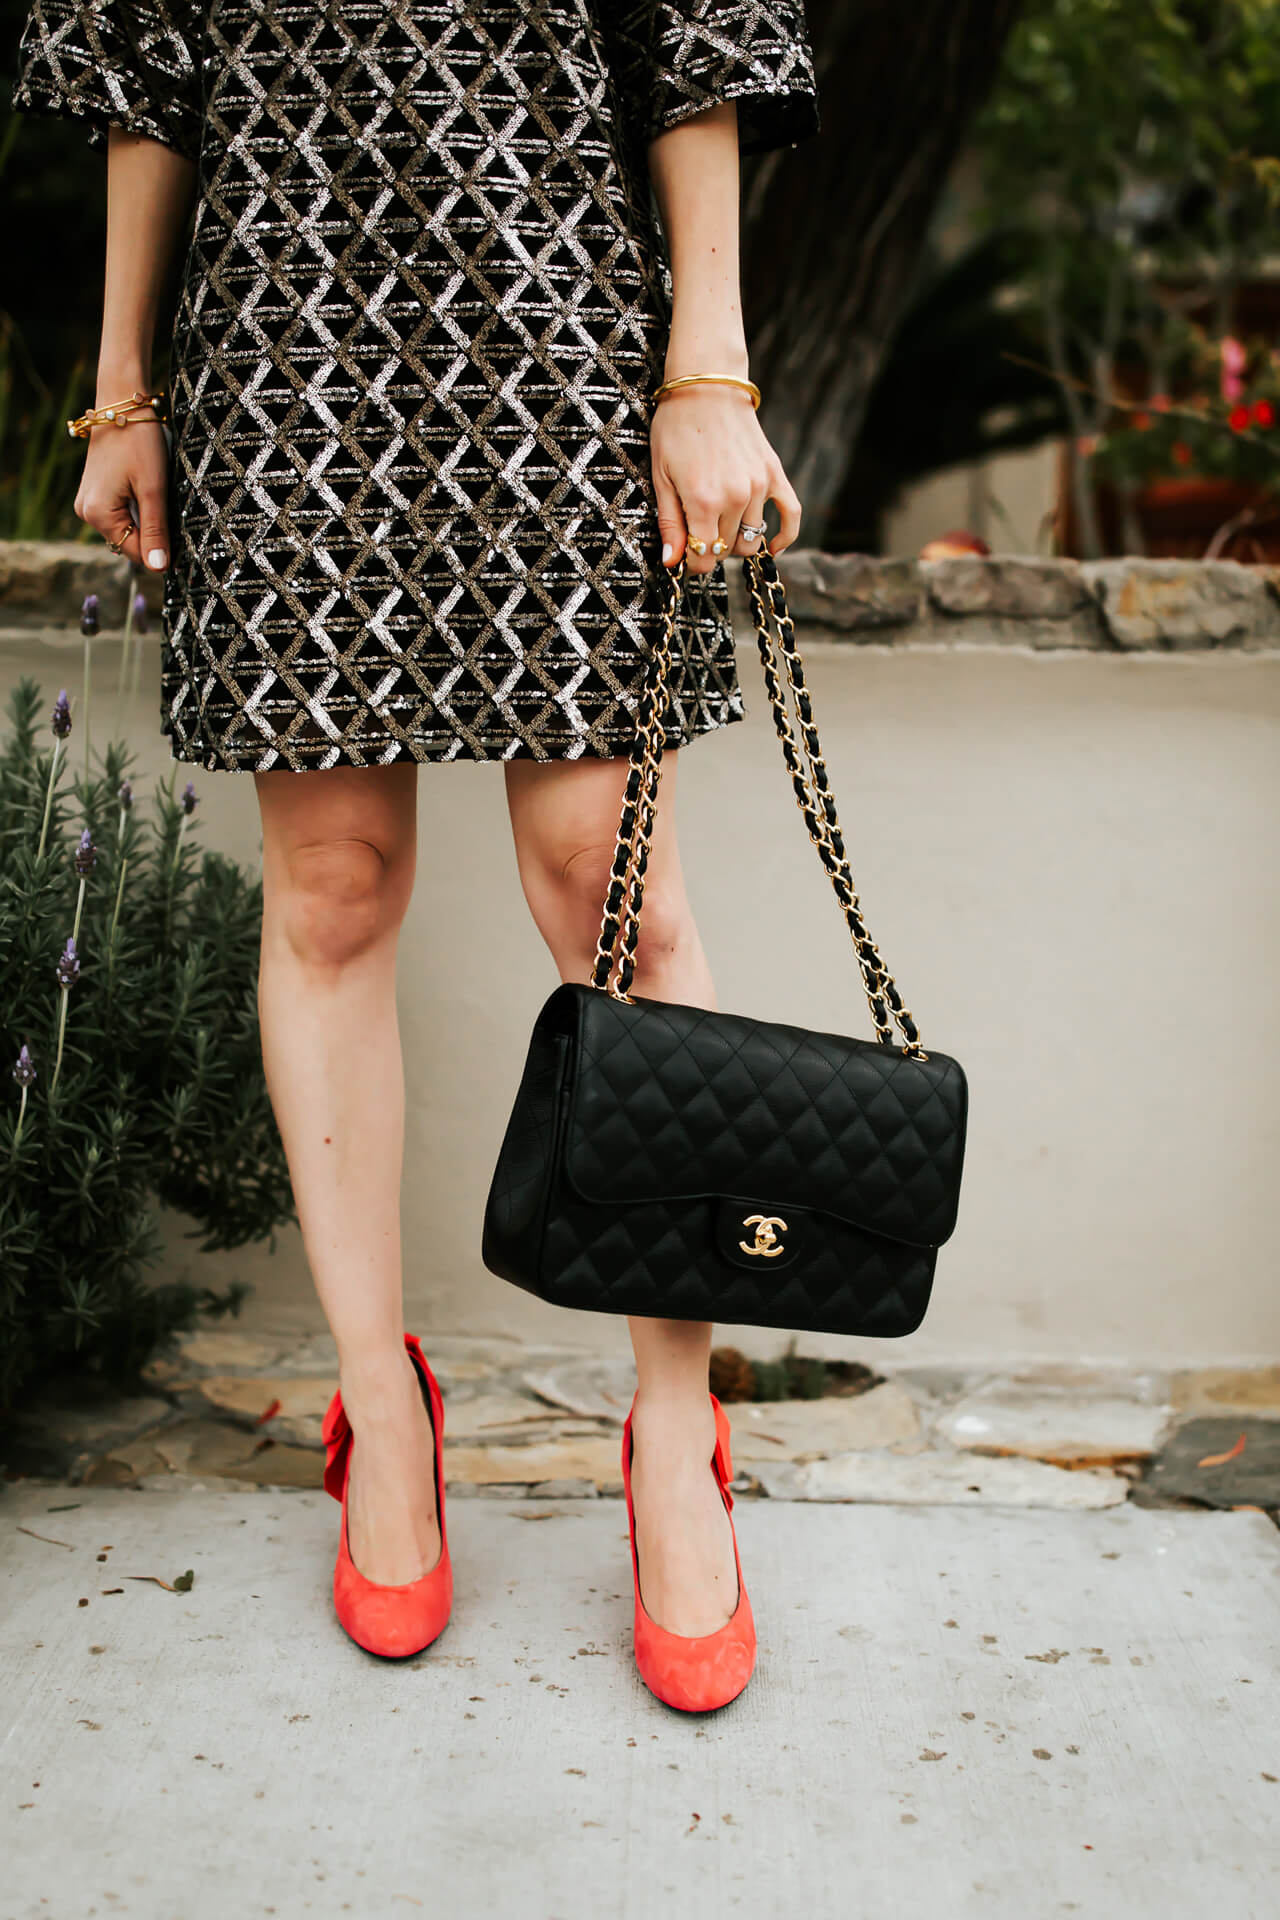 one of my favorite bags is this black Chanel one with a chain strap - M Loves M @marmar